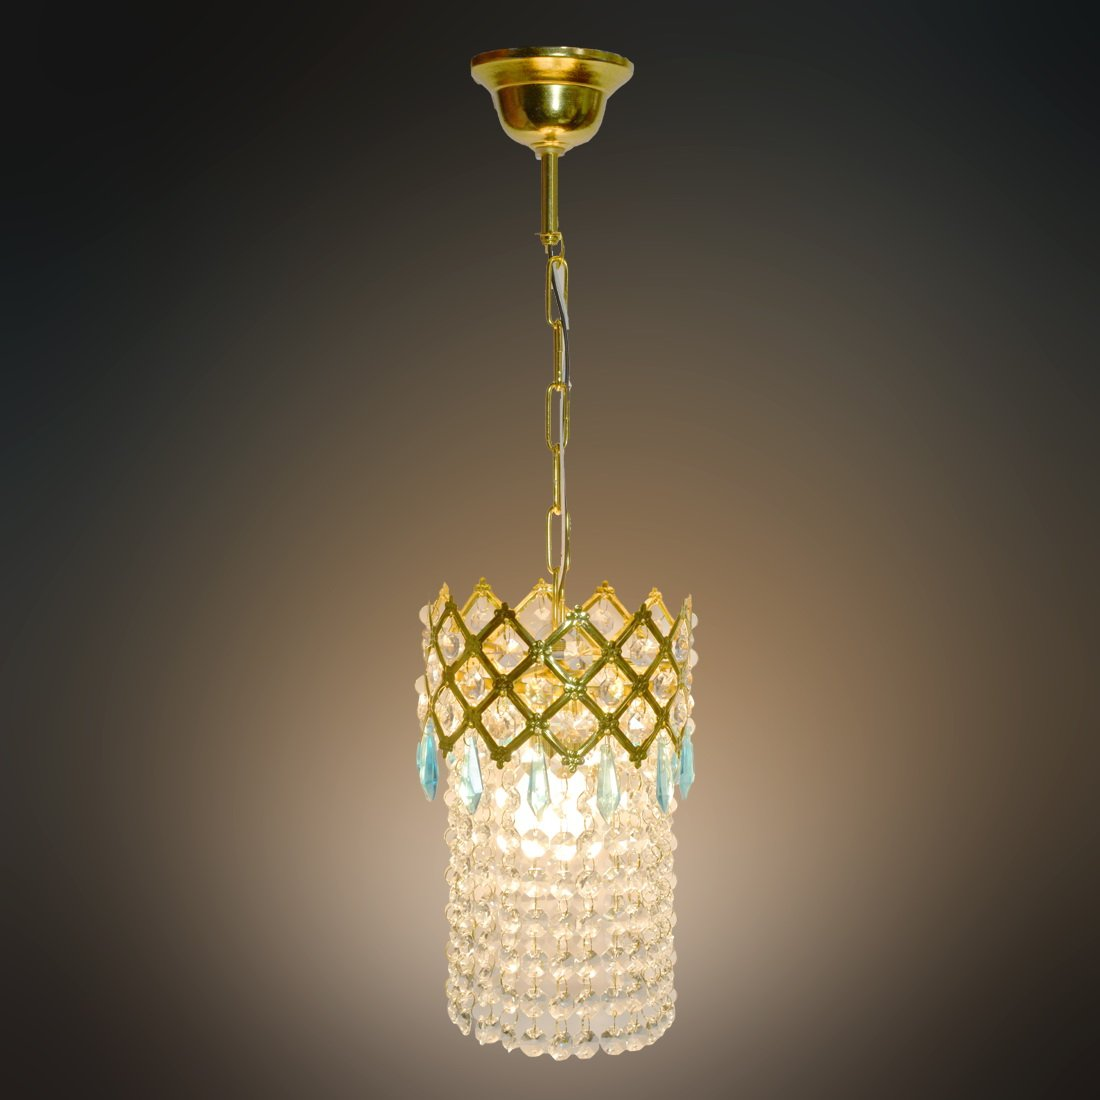 Buy Arus Pendent Crystal Ceiling Lamp Online at Low Prices in India ...